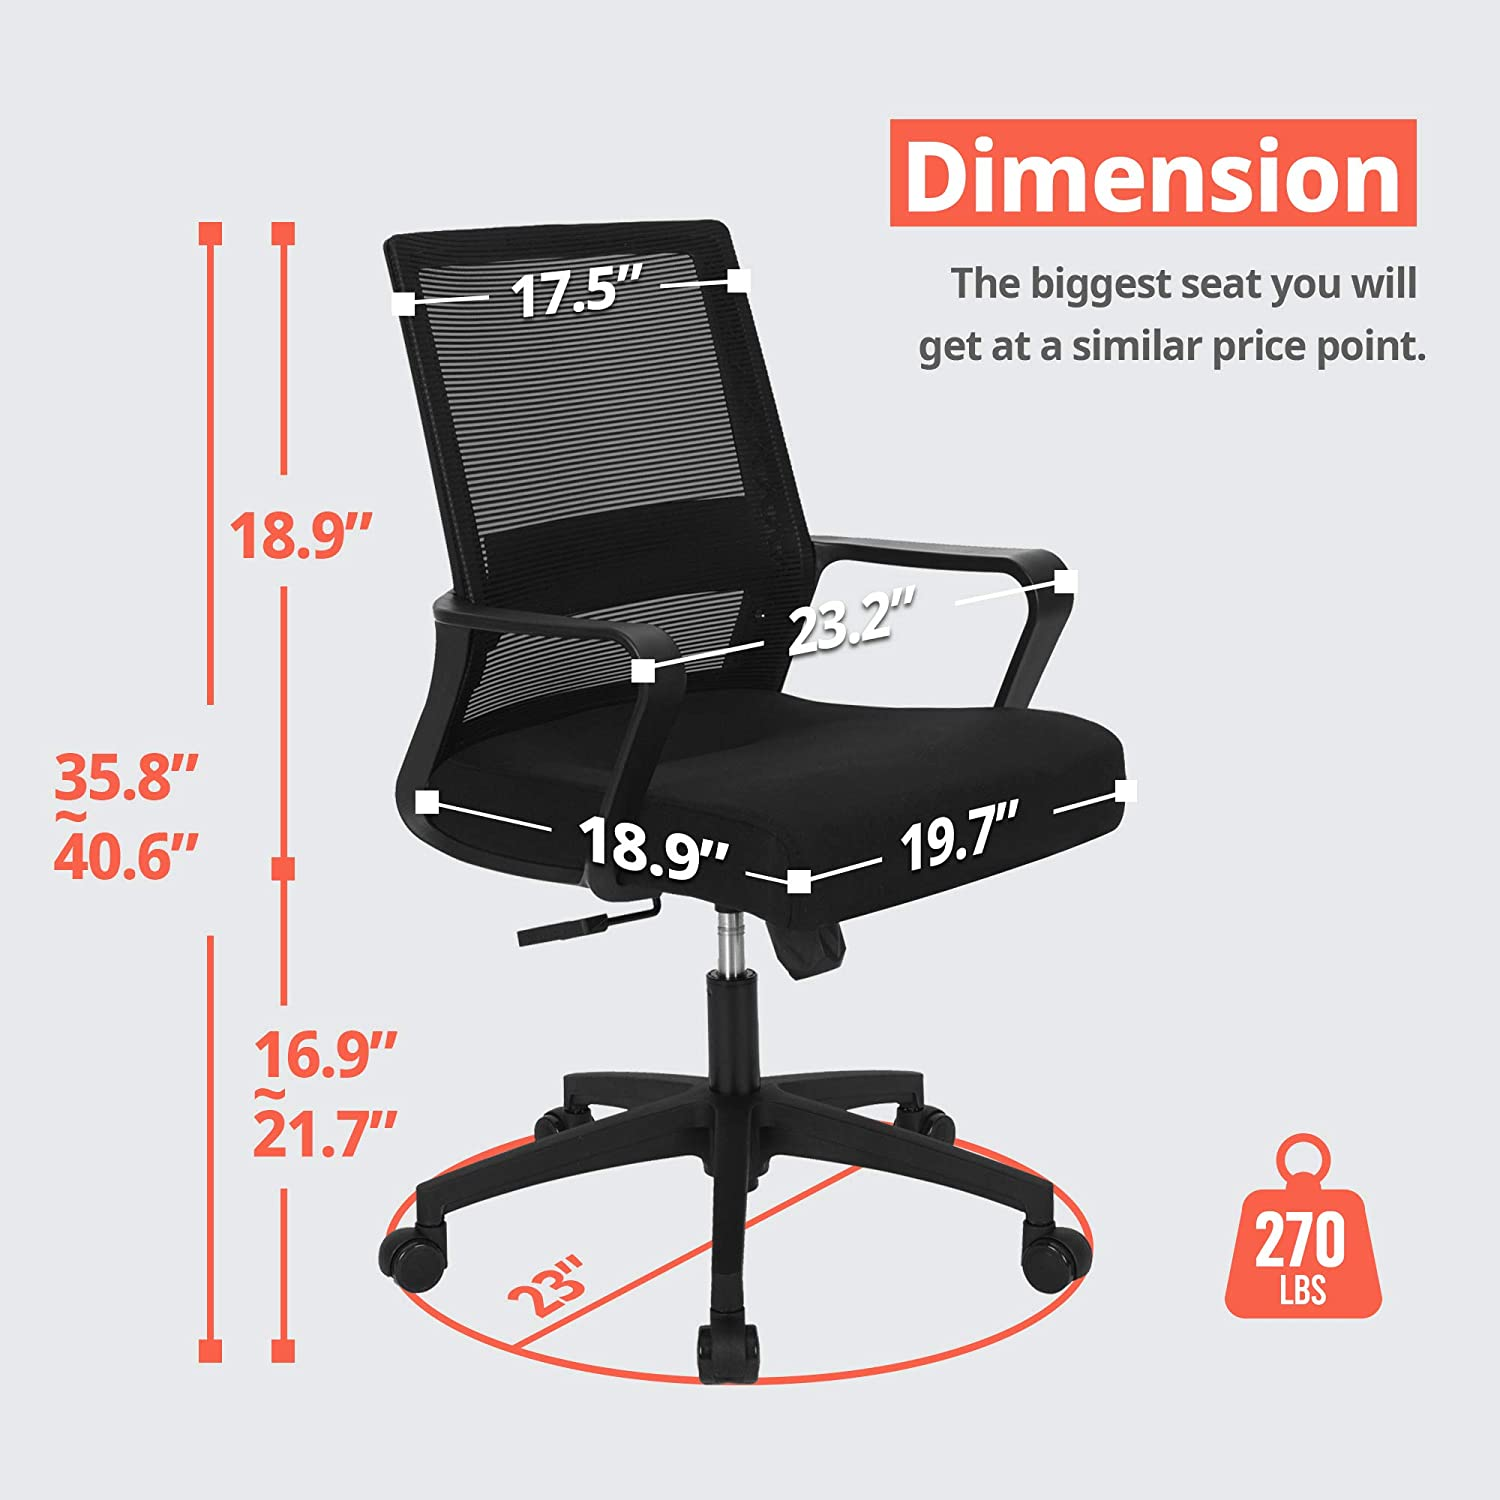 71GSEIOFiaL. AC SL1500 - What is The Best Computer Chair For Long Hours Sitting? [Comfortable and Ergonomic] - ChairPicks